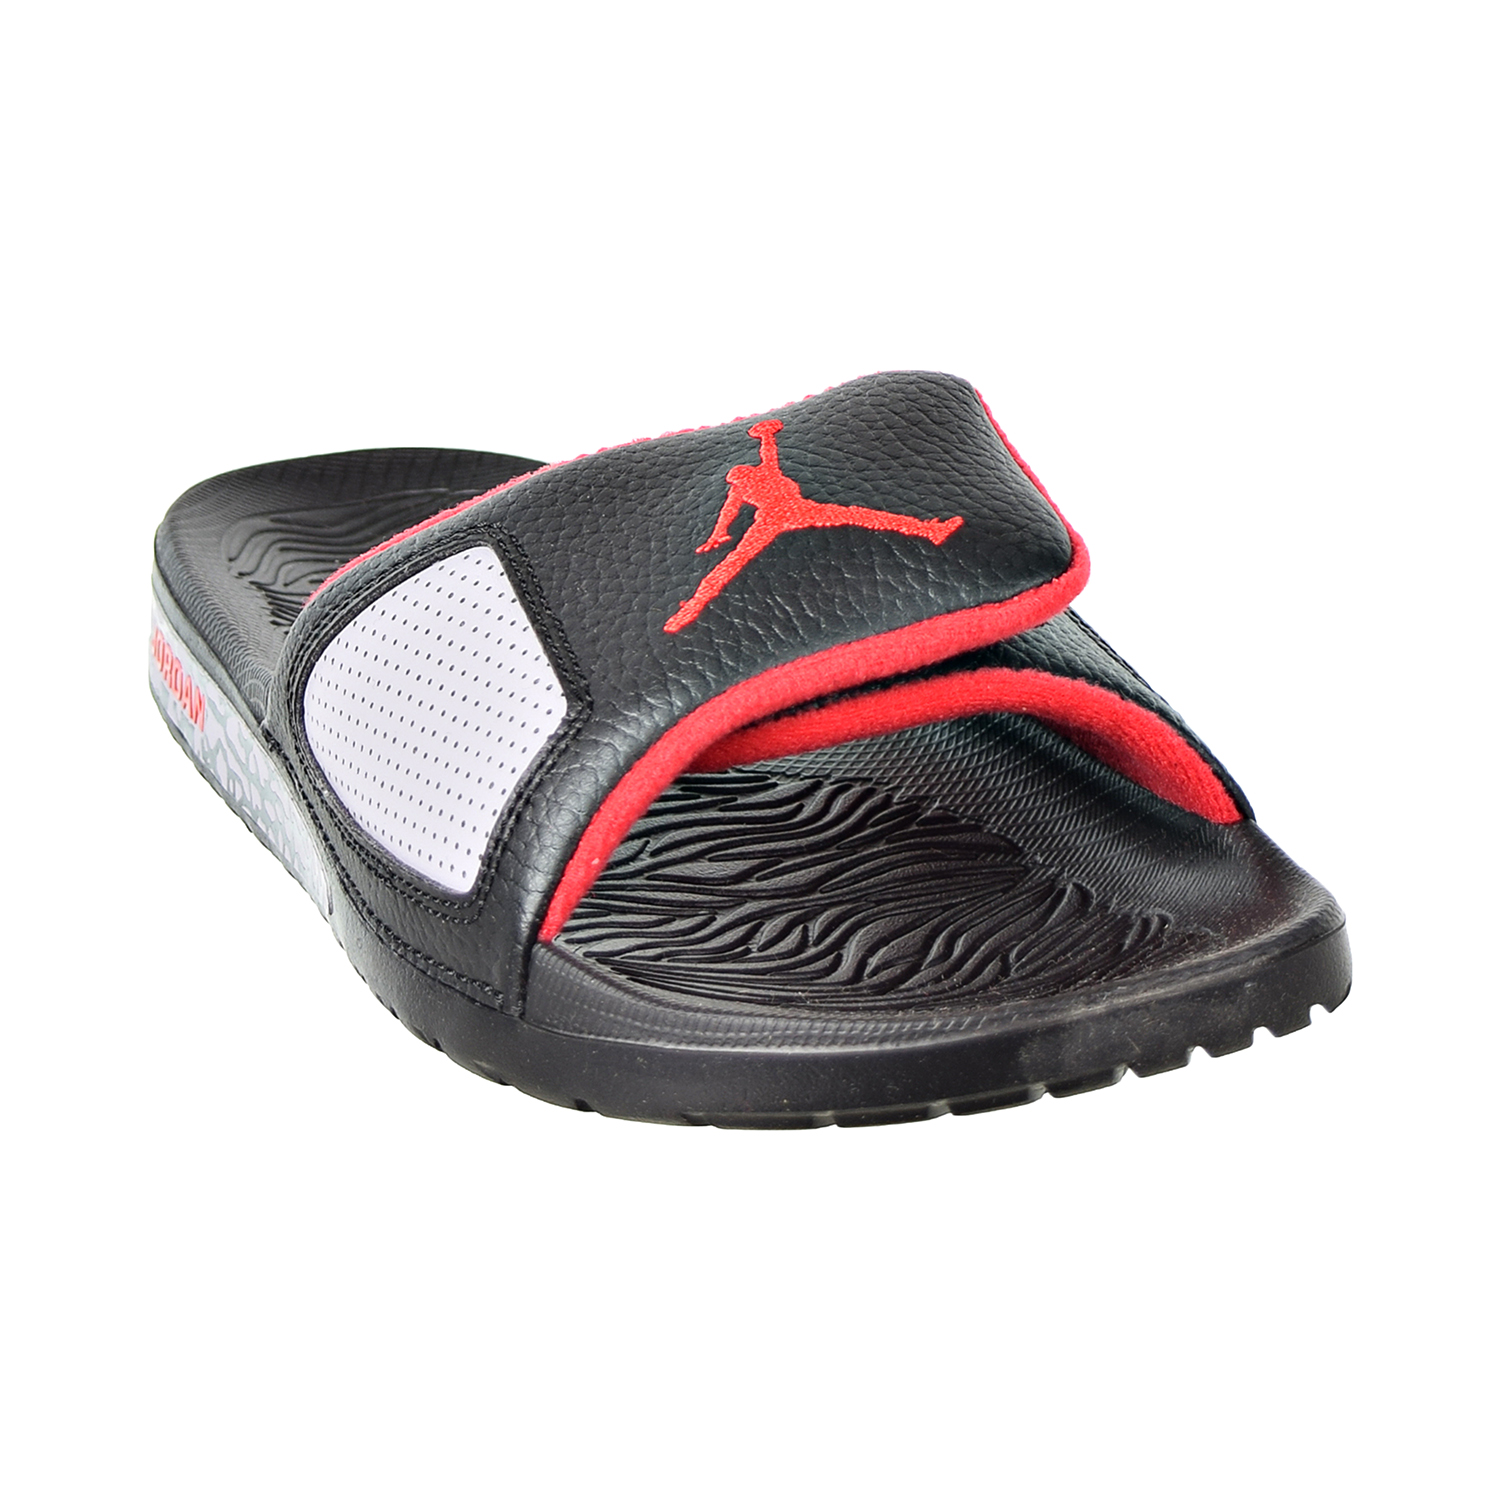 204087993d8efc Details about Jordan Hydro III Retro Men s Slides Black University Red  854556-003